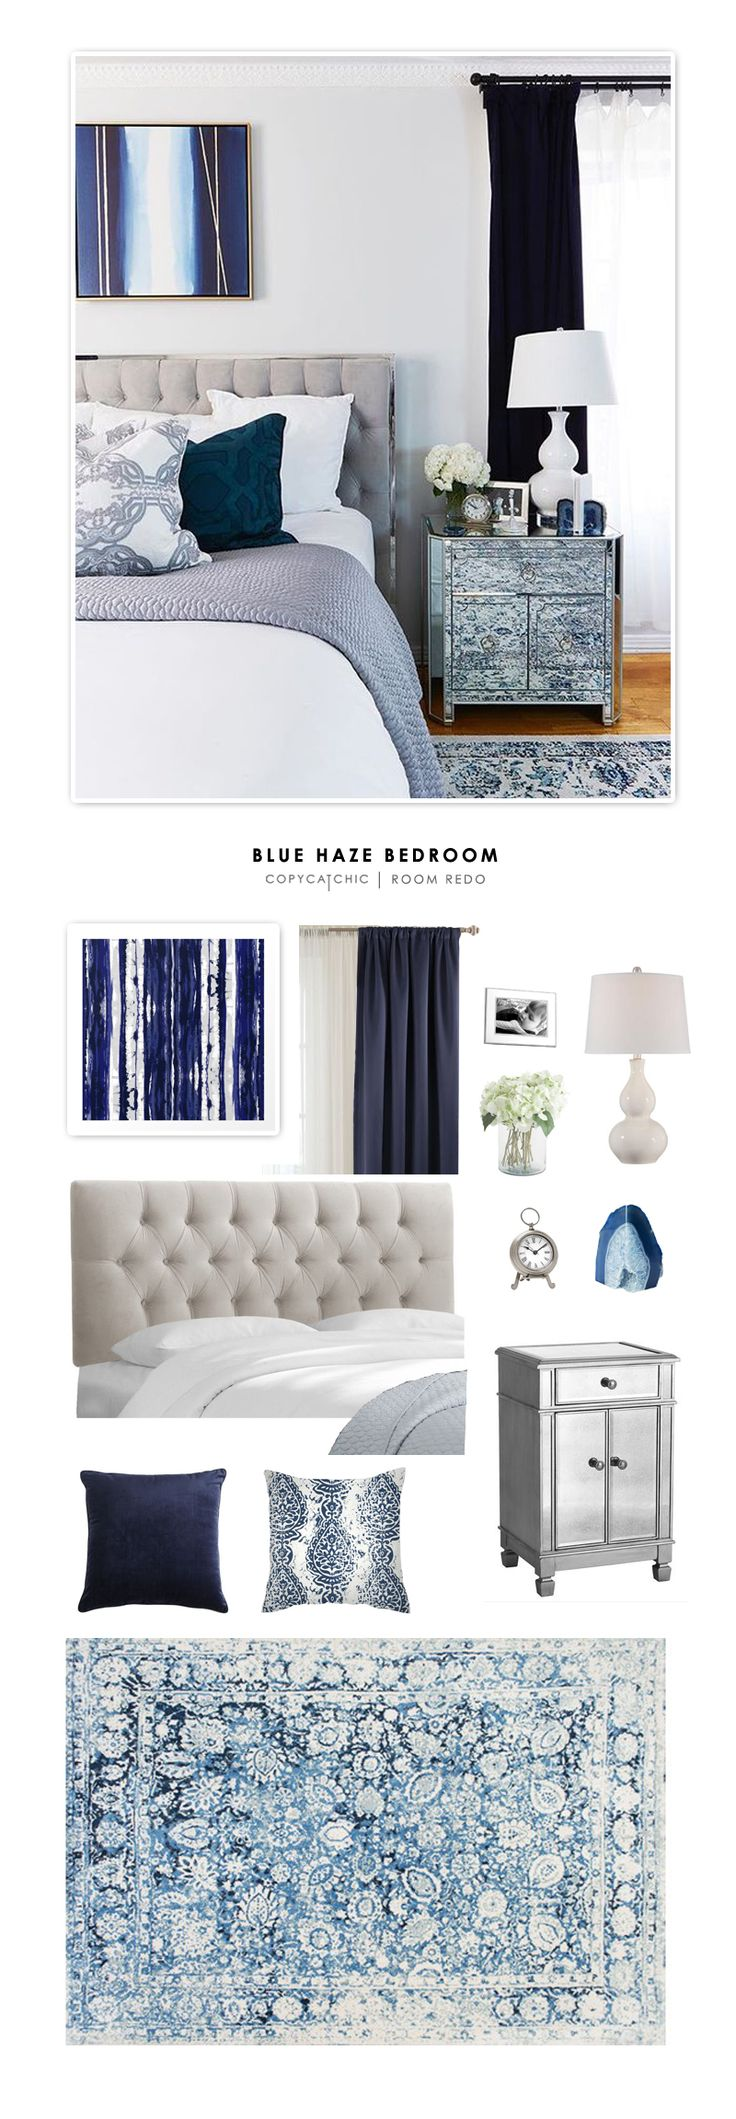 Master bedroom colors blue - Find This Pin And More On Bedroom This Sophisticated Blue Master